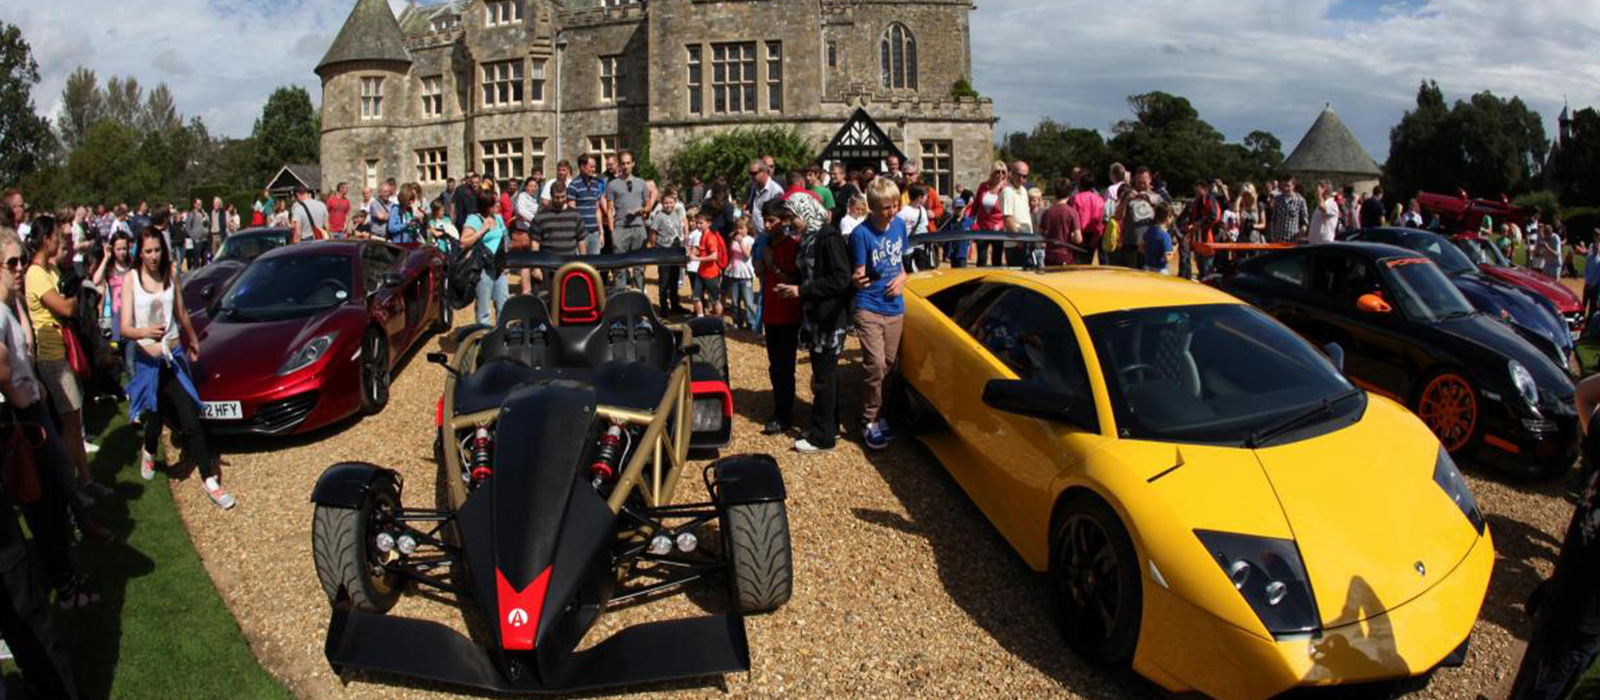 Ariel-Atom-Beaulieu-Supercar-Event-Lamborghini-Saxon-Insurance-Brokers.jpg